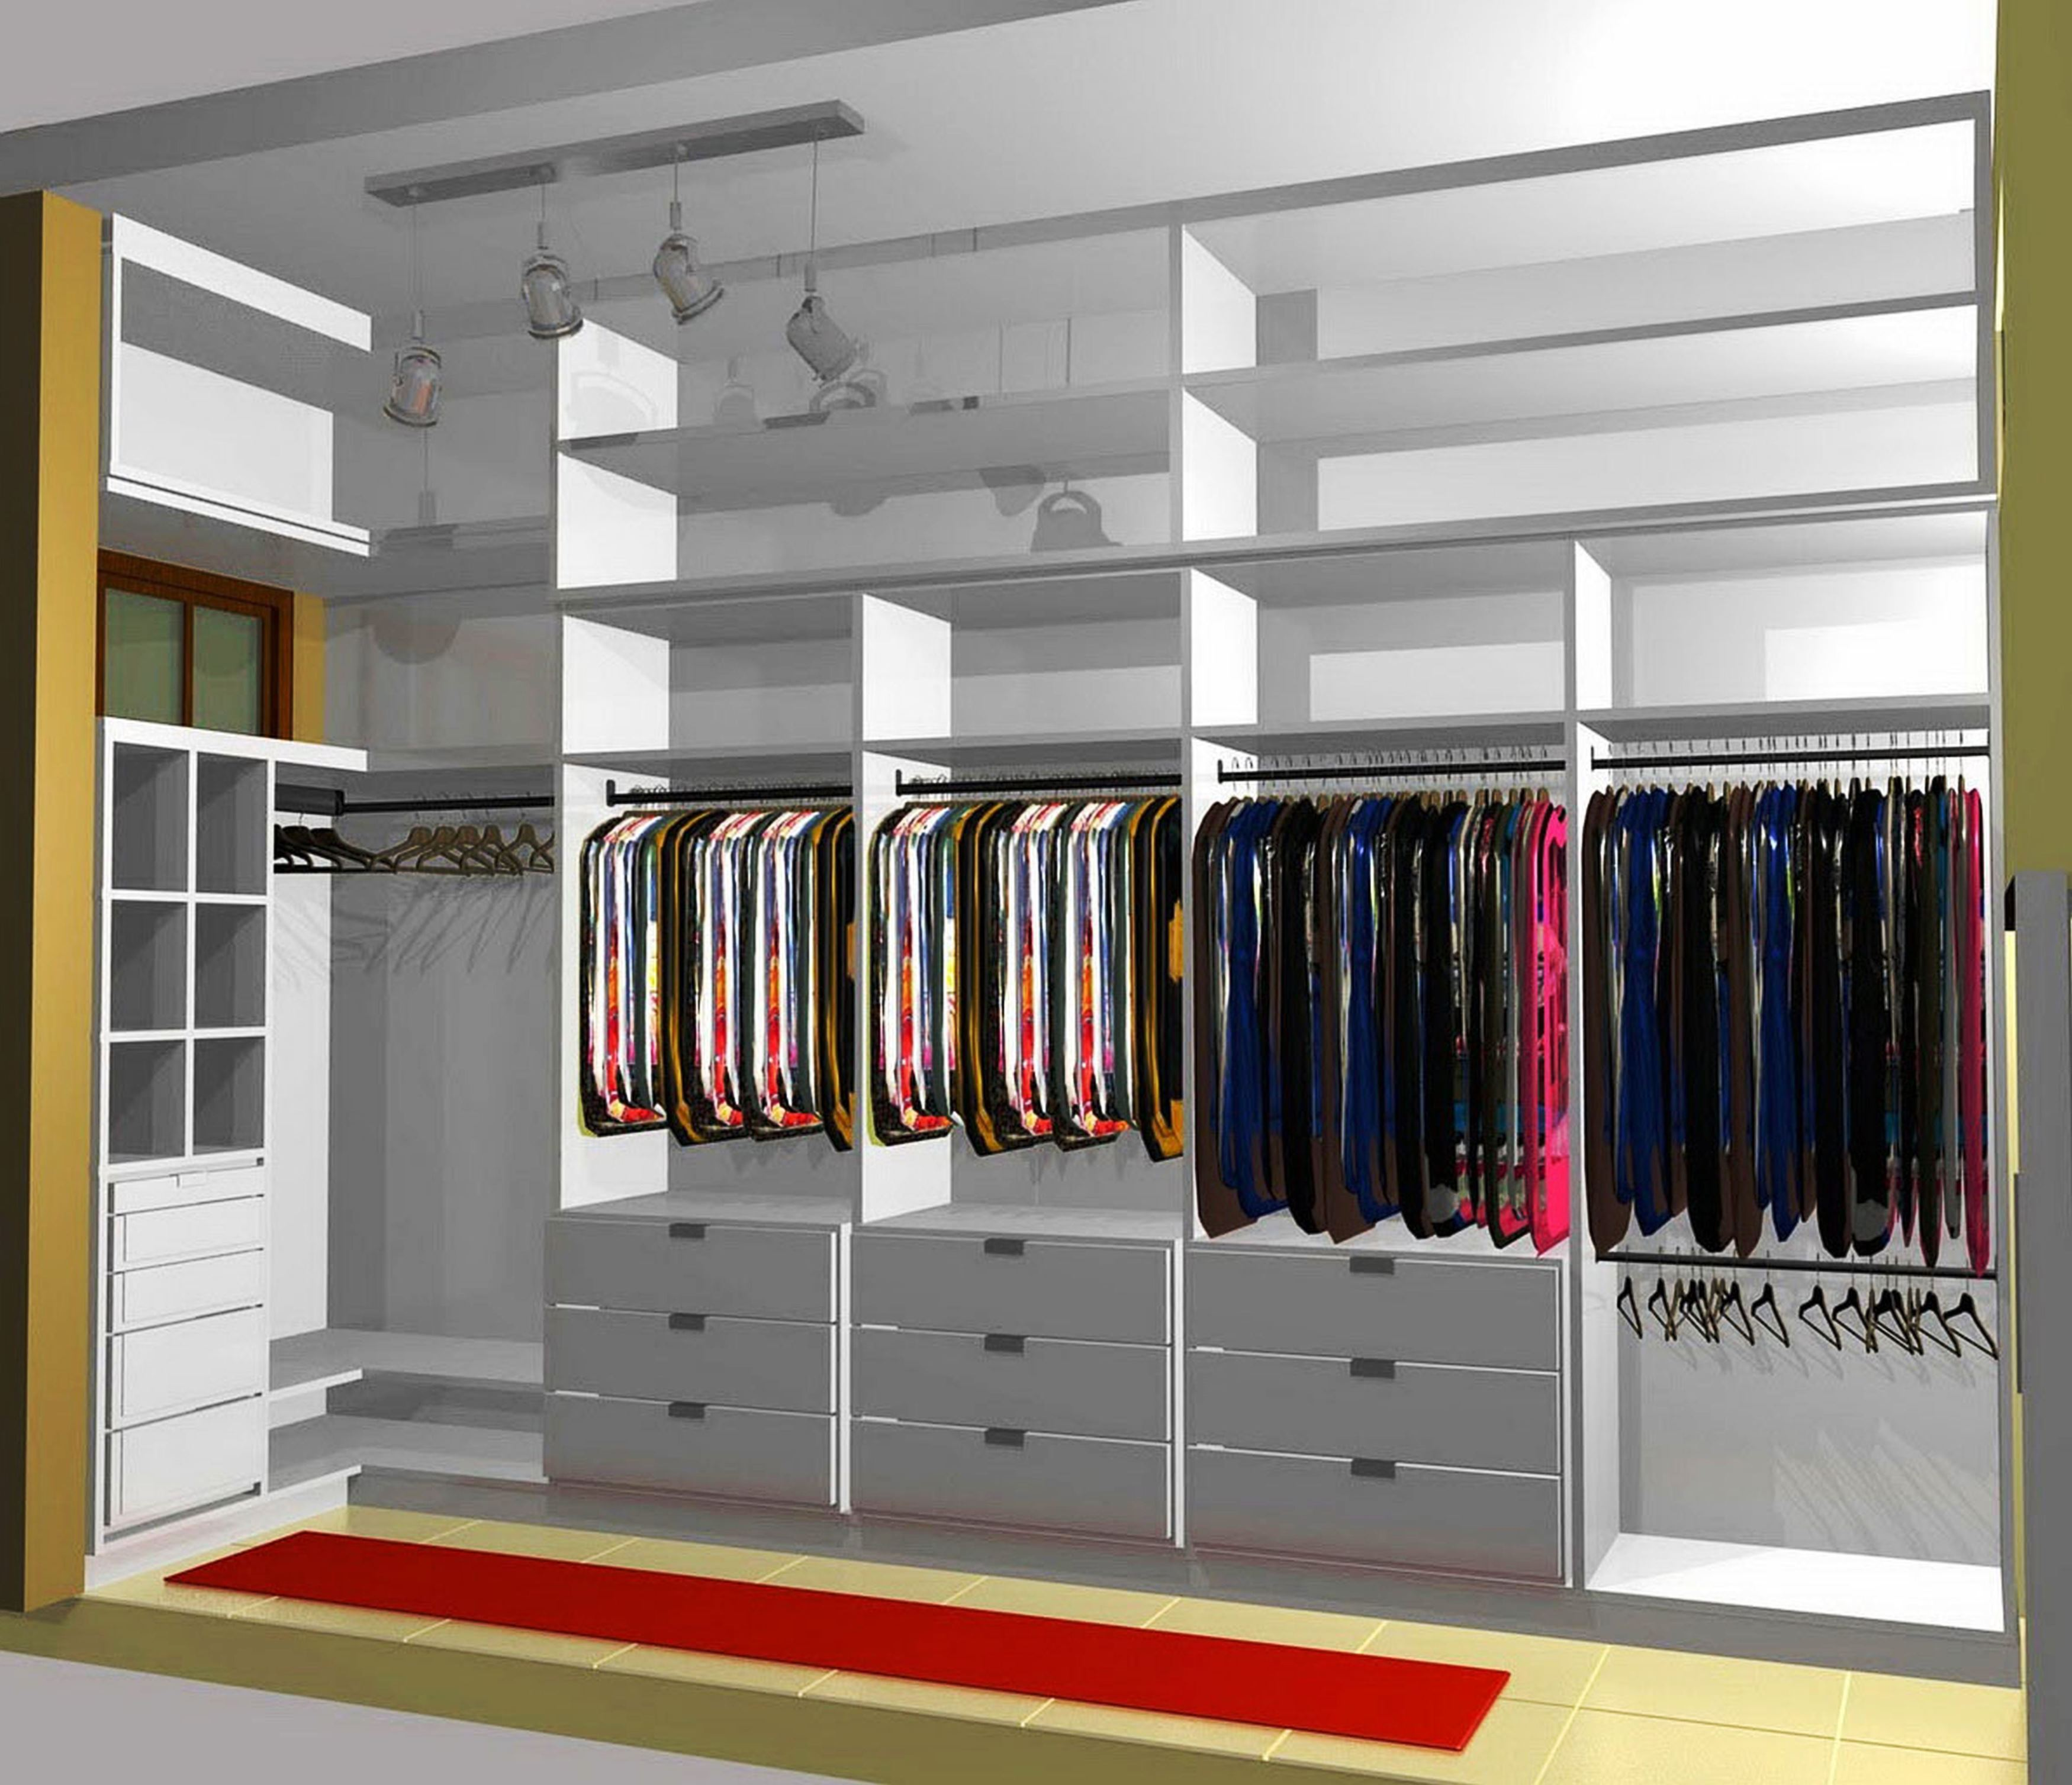 Best Small Walk In Closet Design | Diy Walk In Closet | How To Organize A Walk In Closet